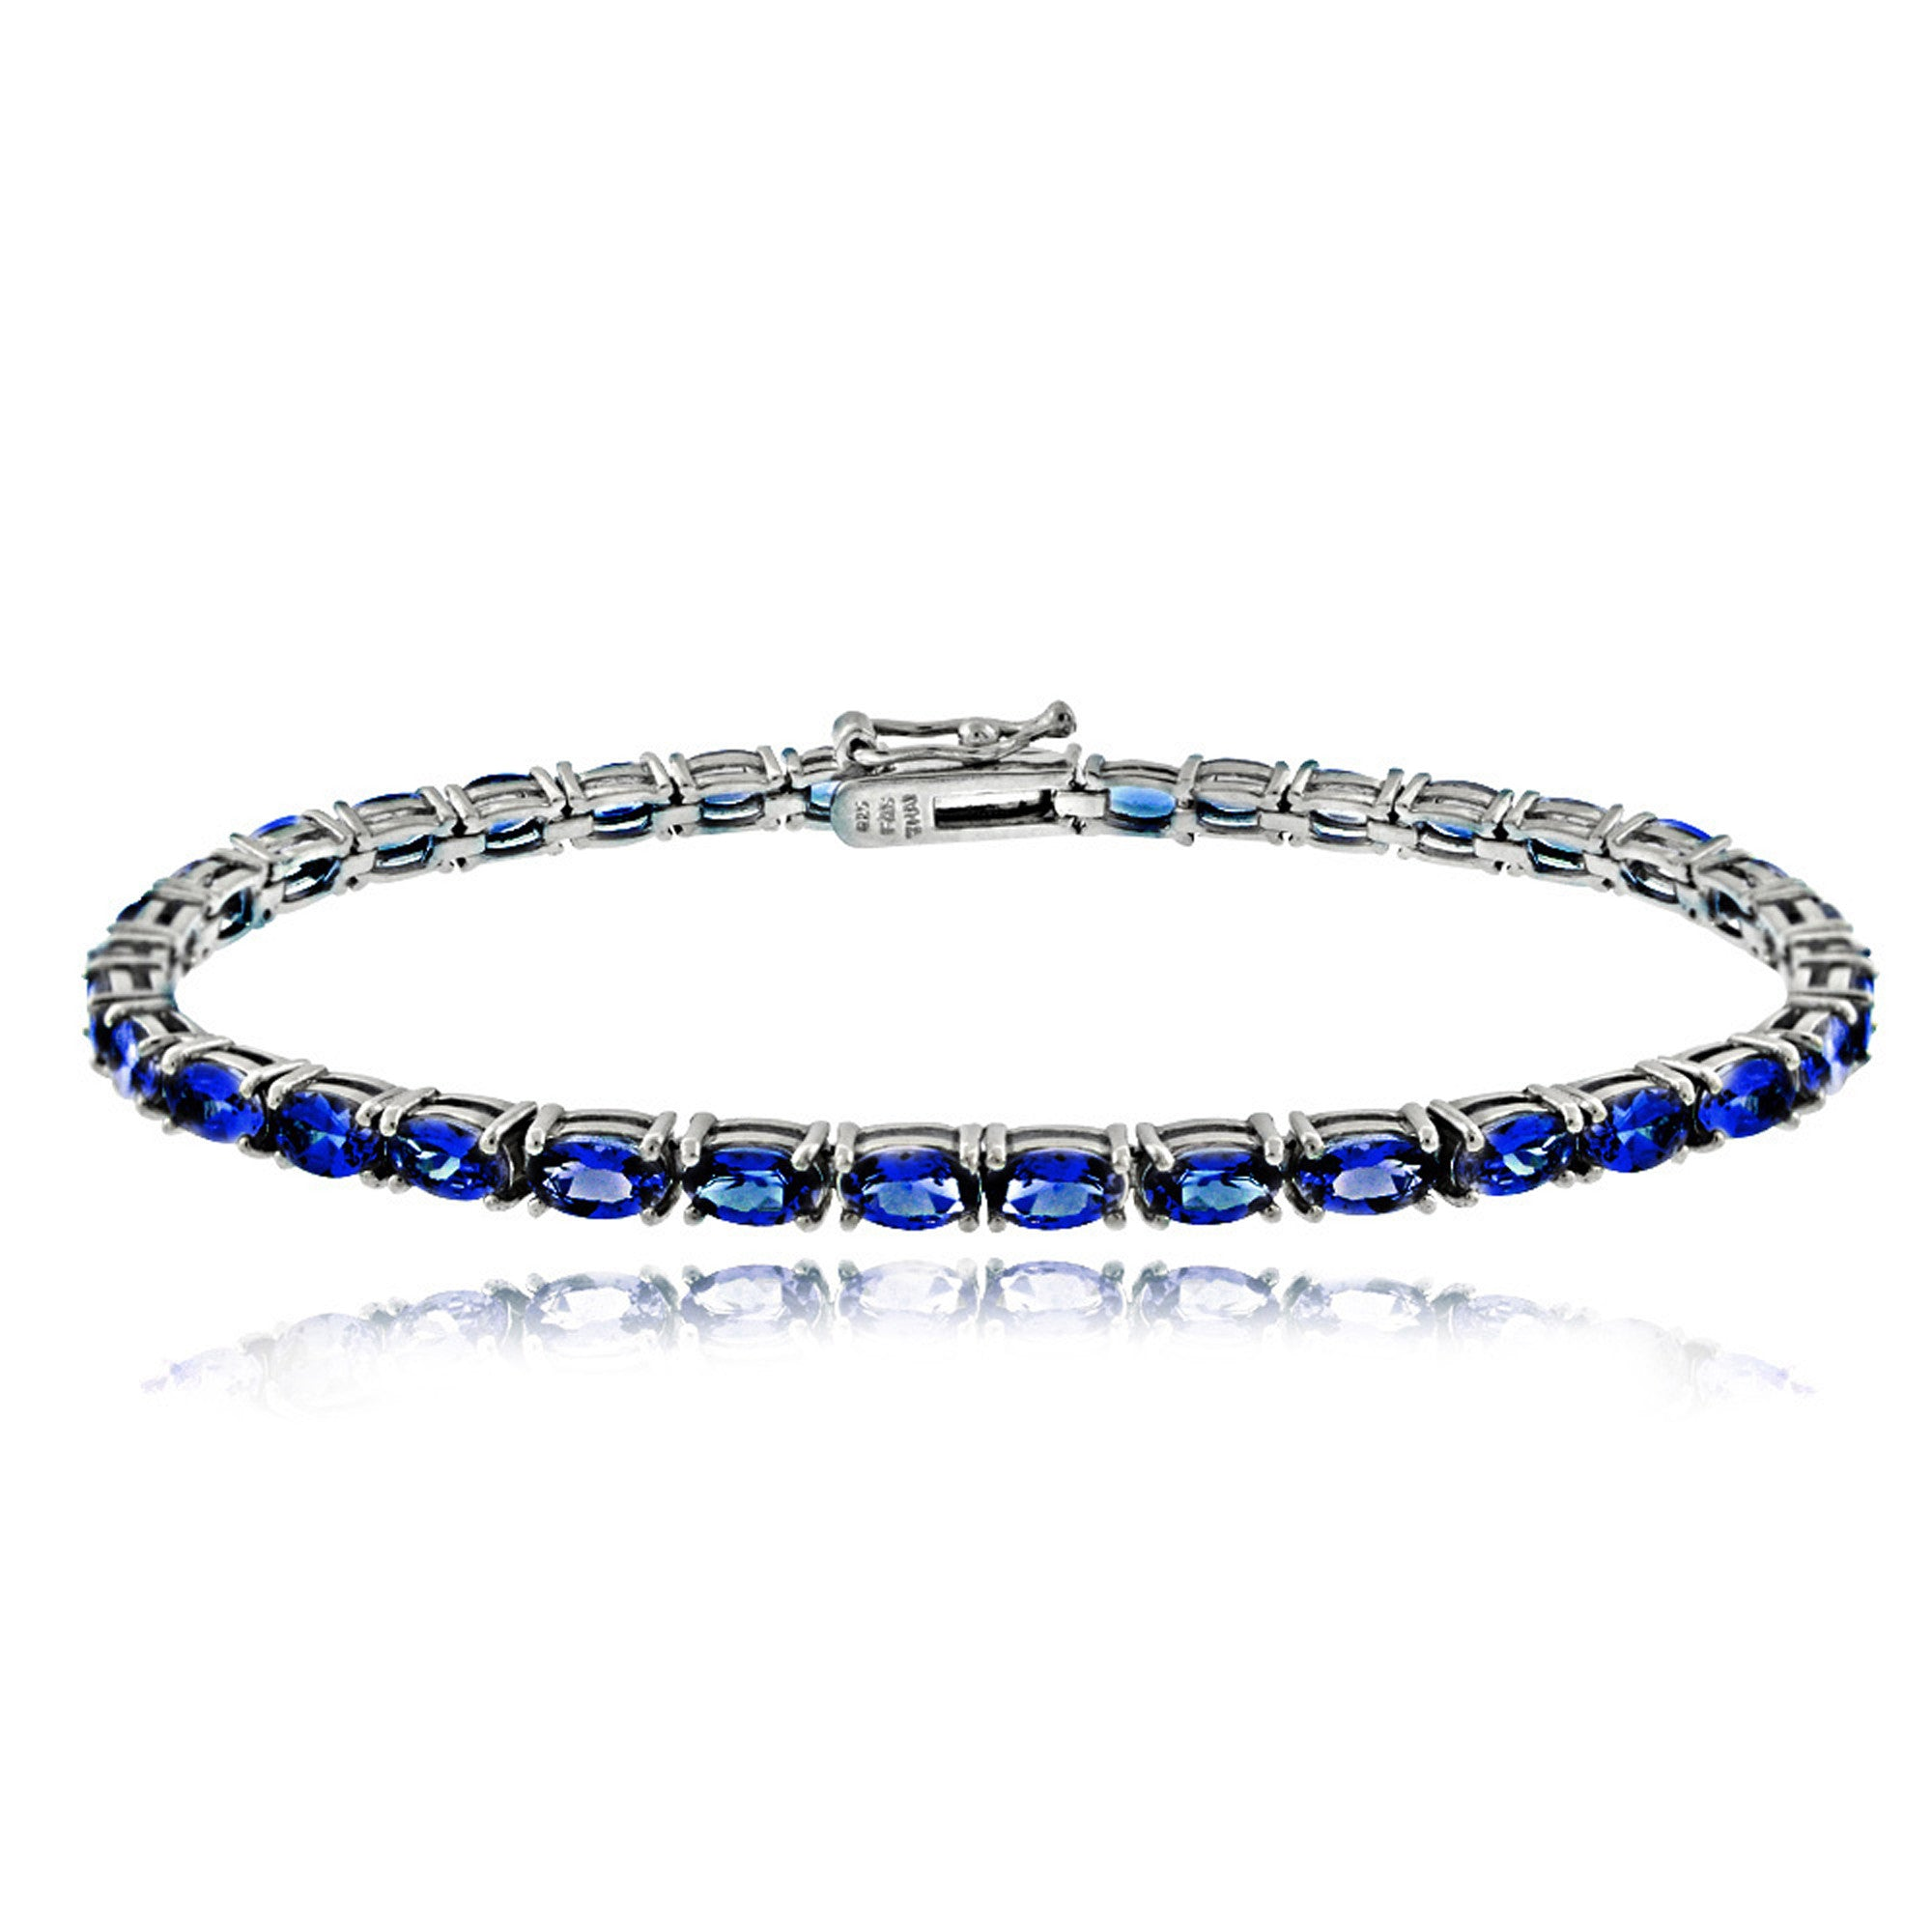 Birthstone Tennis Bracelet With CZ & Gem Accents in Sterling Silver - September Sapphire